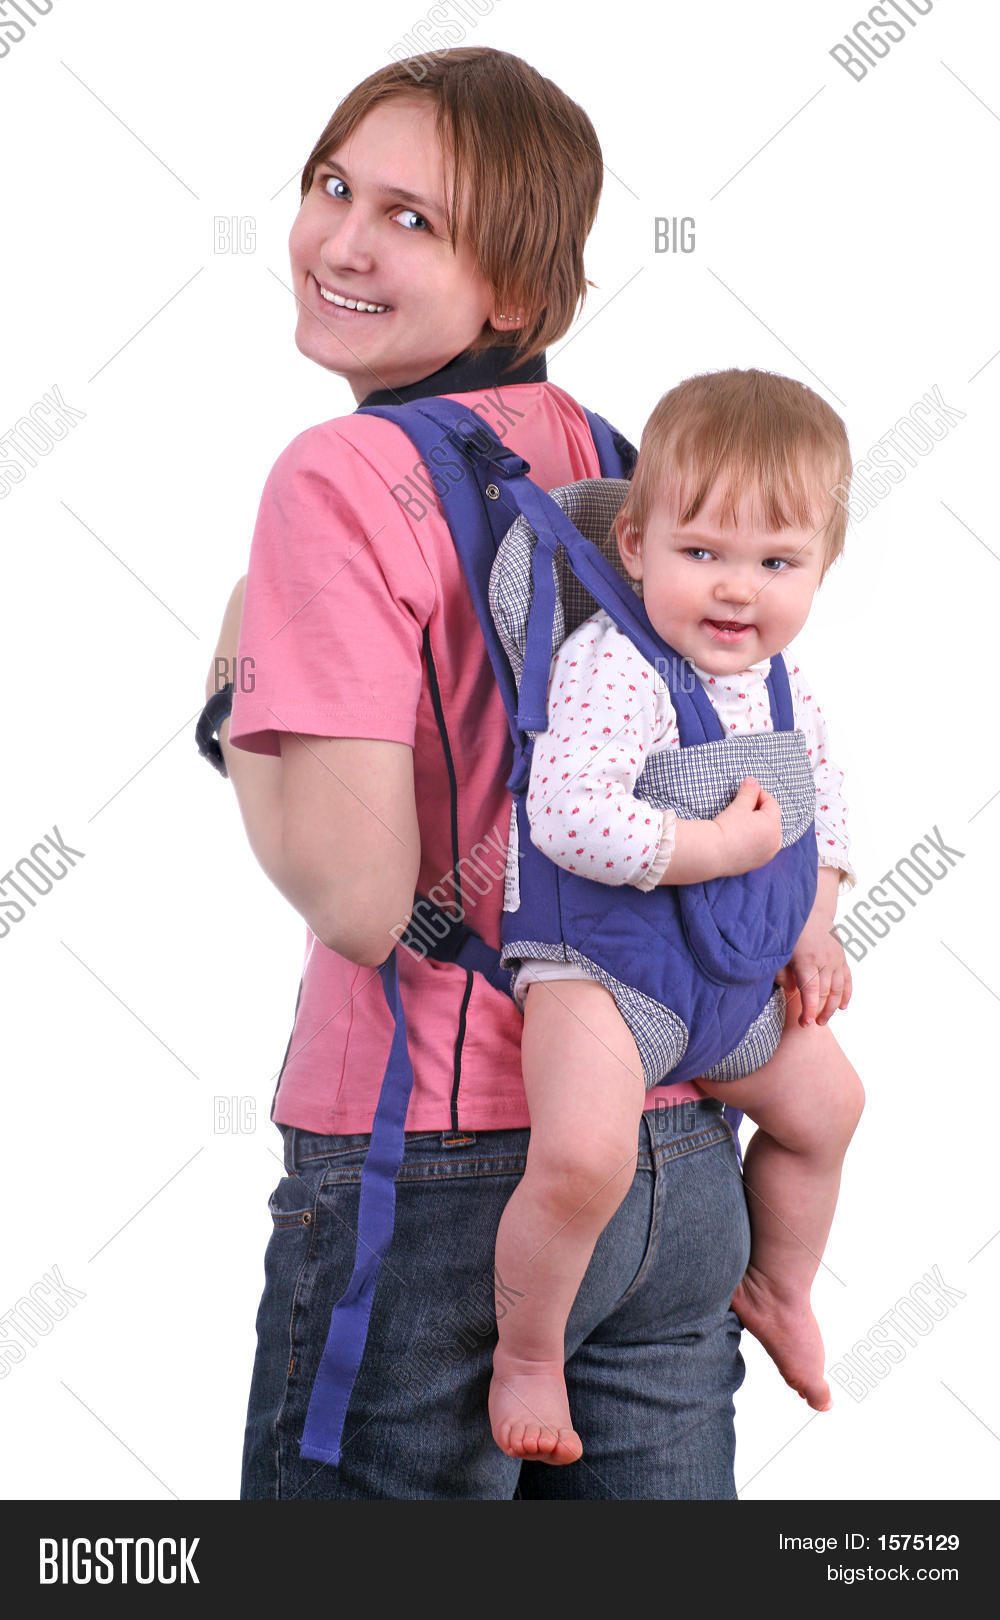 e177d79c19b happy young mother or babysitter carrying a baby in a baby carrier on her  back isolated on white